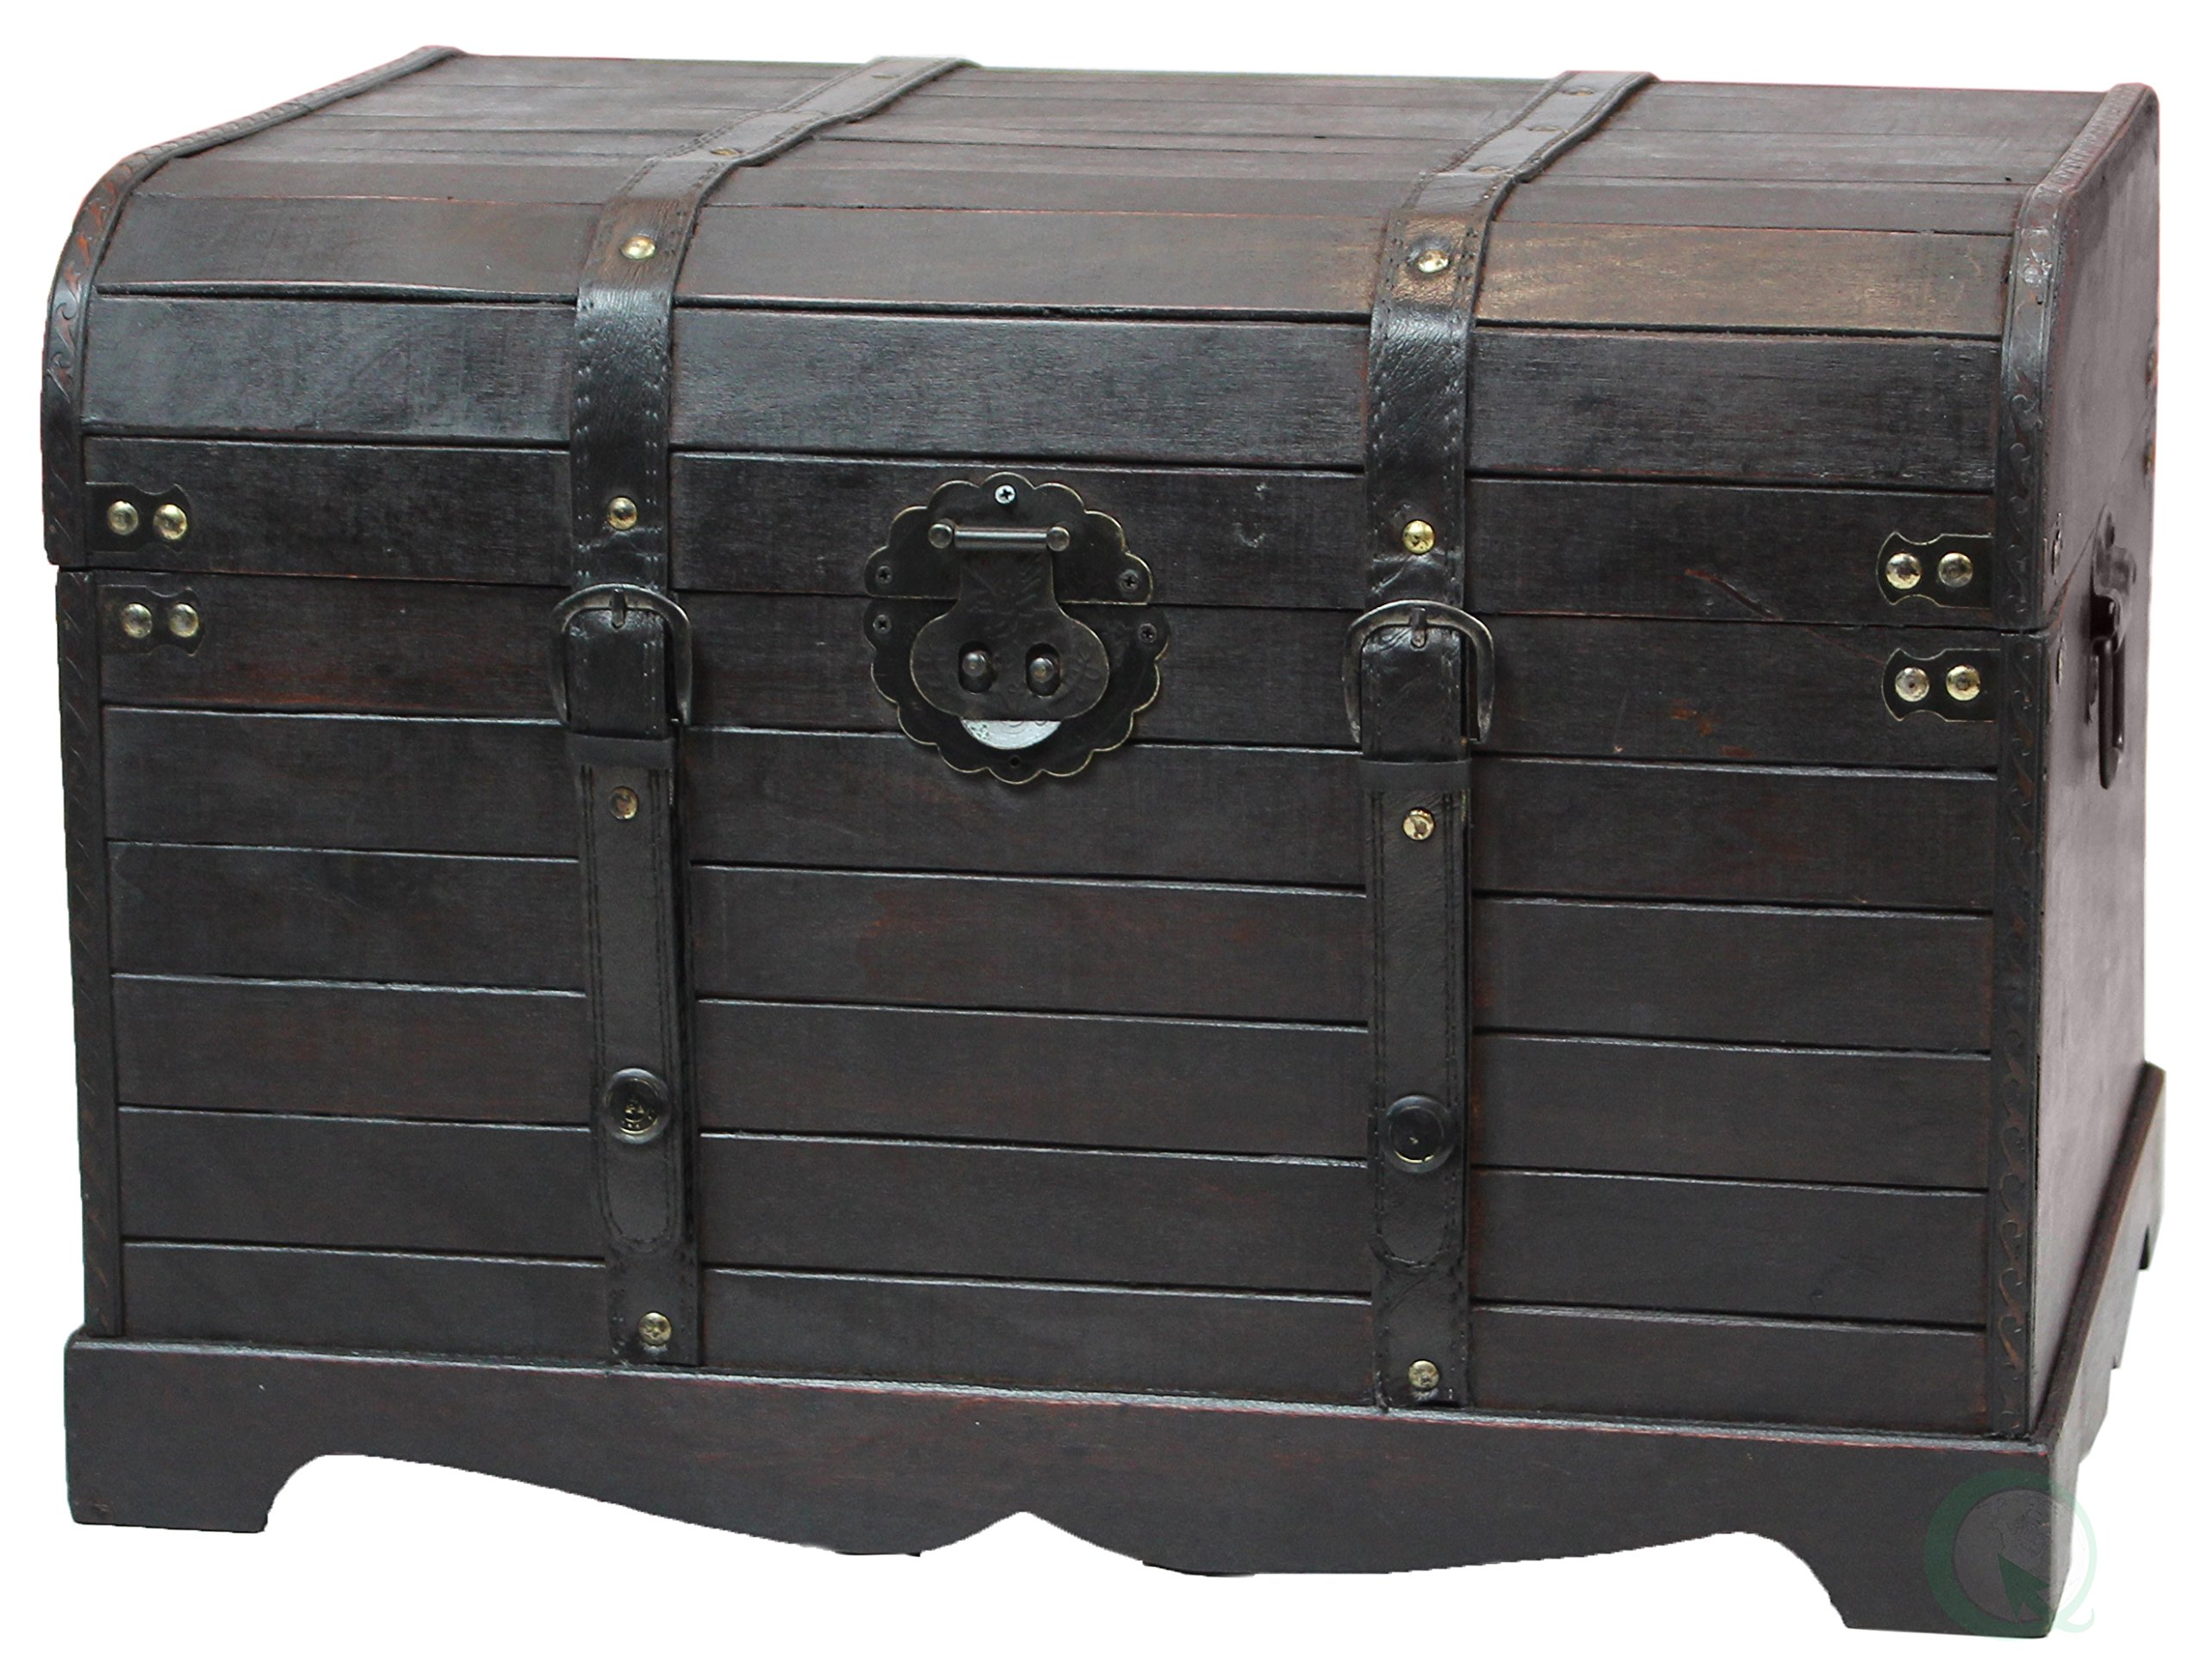 Wondrous Buy Antique Style Black Wooden Steamer Trunk Coffee Table Evergreenethics Interior Chair Design Evergreenethicsorg